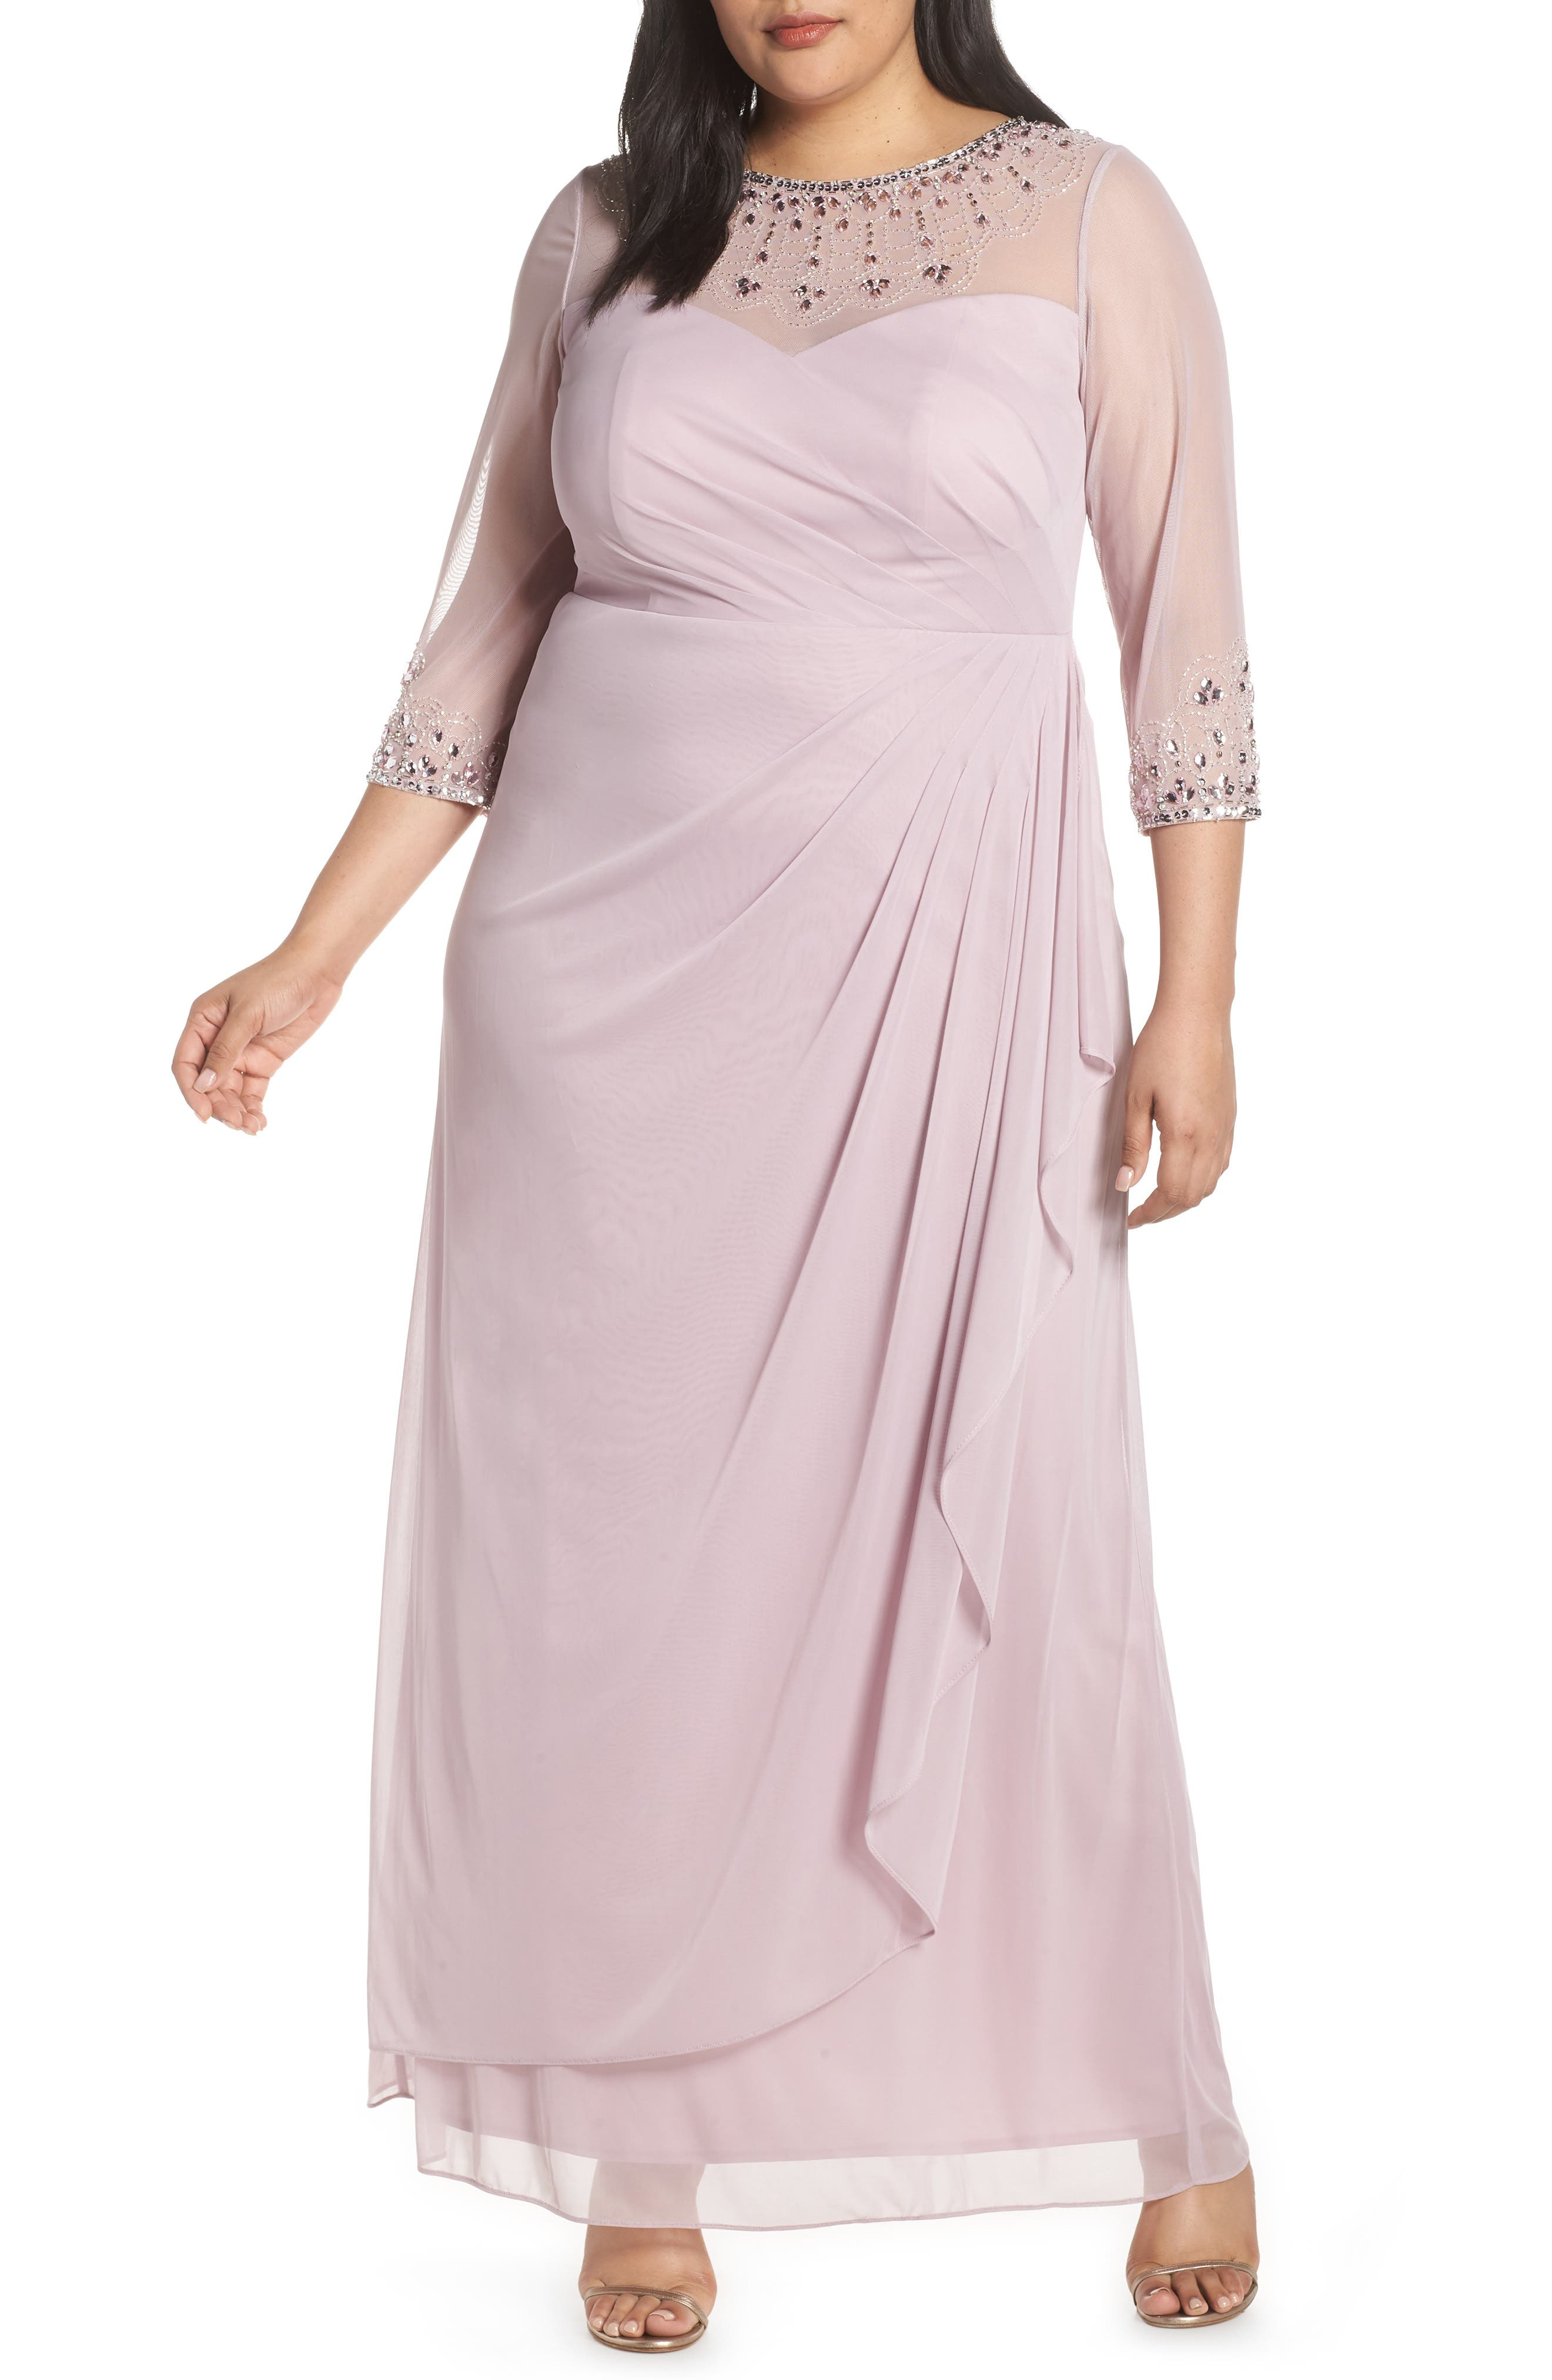 ALEX EVENINGS, Beaded Illusion Neck A-Line Gown, Main thumbnail 1, color, SMOKEY ORCHID